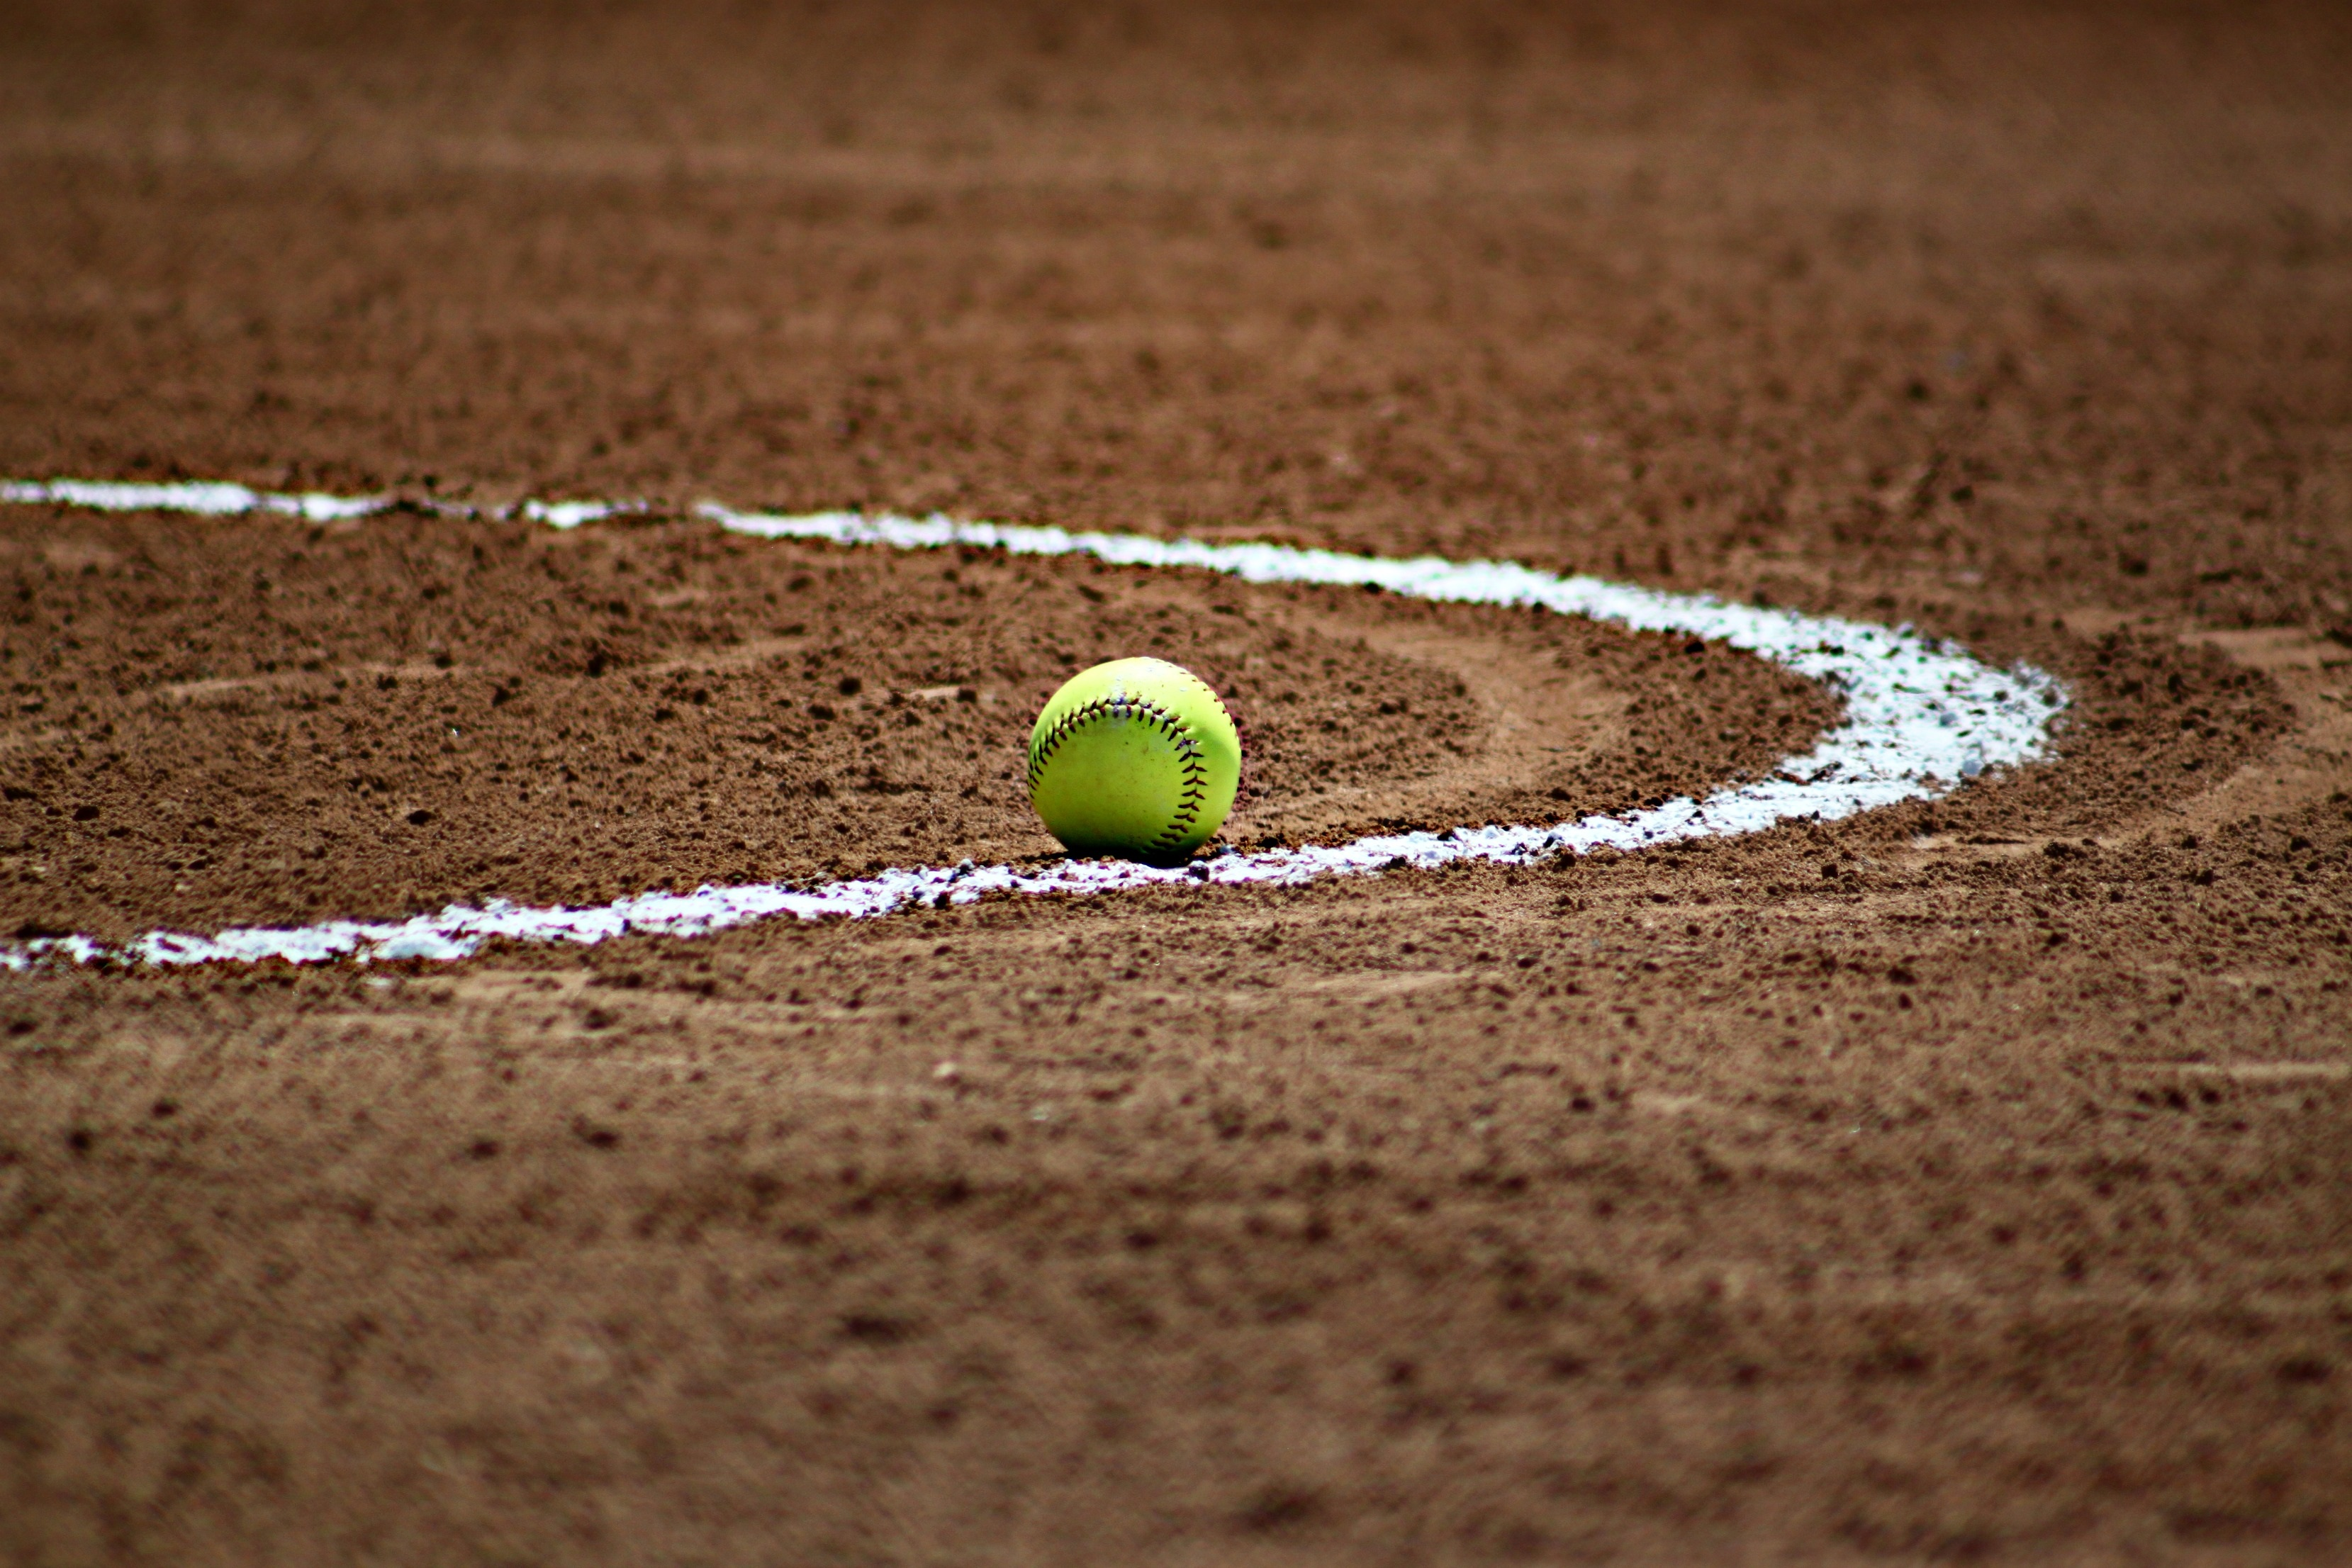 https://midwestspeedfastpitch.org/wp-content/uploads/2018/09/softball-372979.jpg